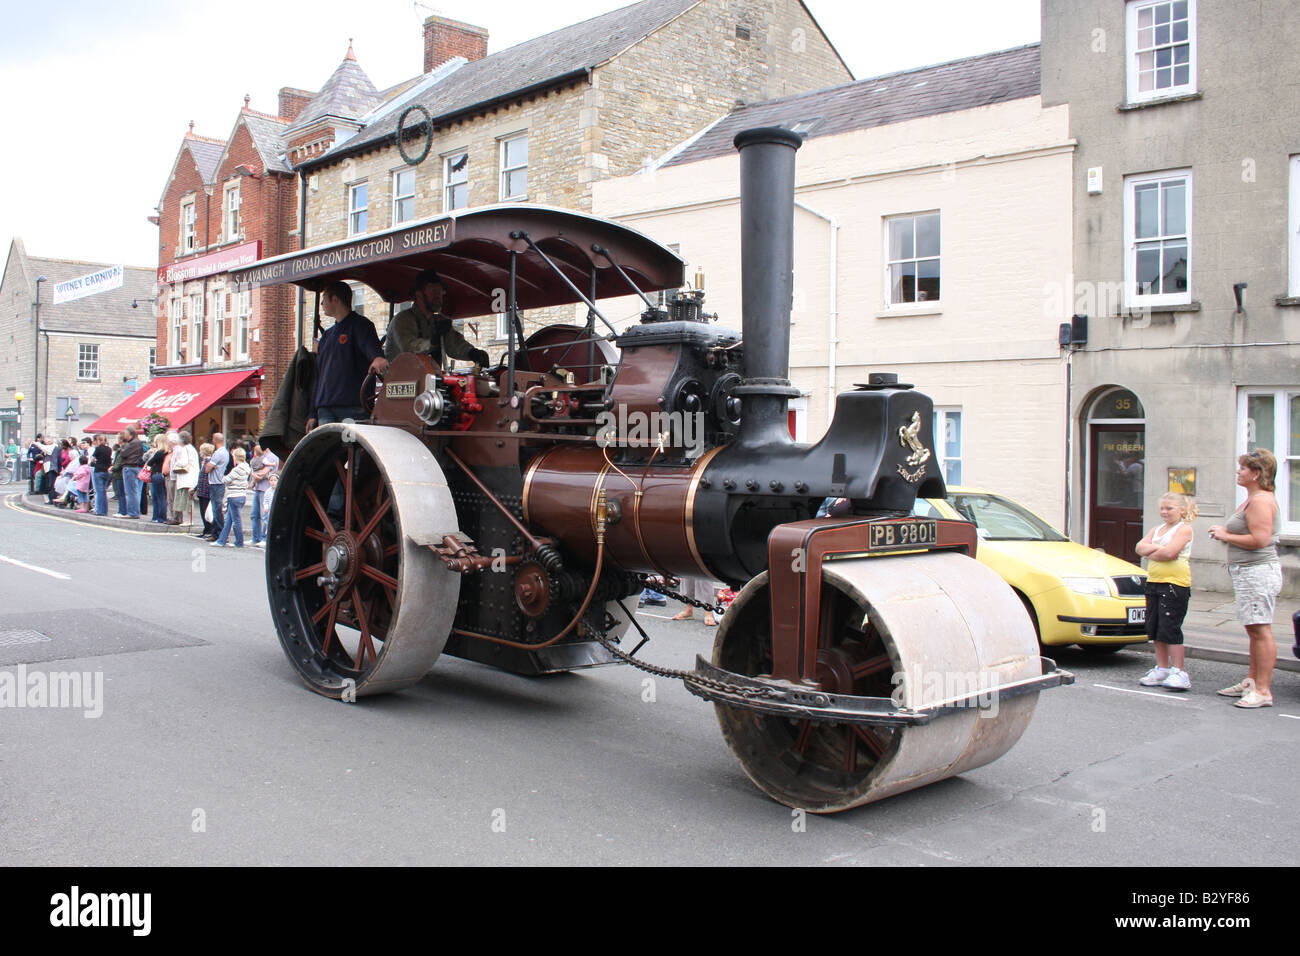 An old road building steam traction engine at Witney carnival in Oxfordshire UK. - Stock Image